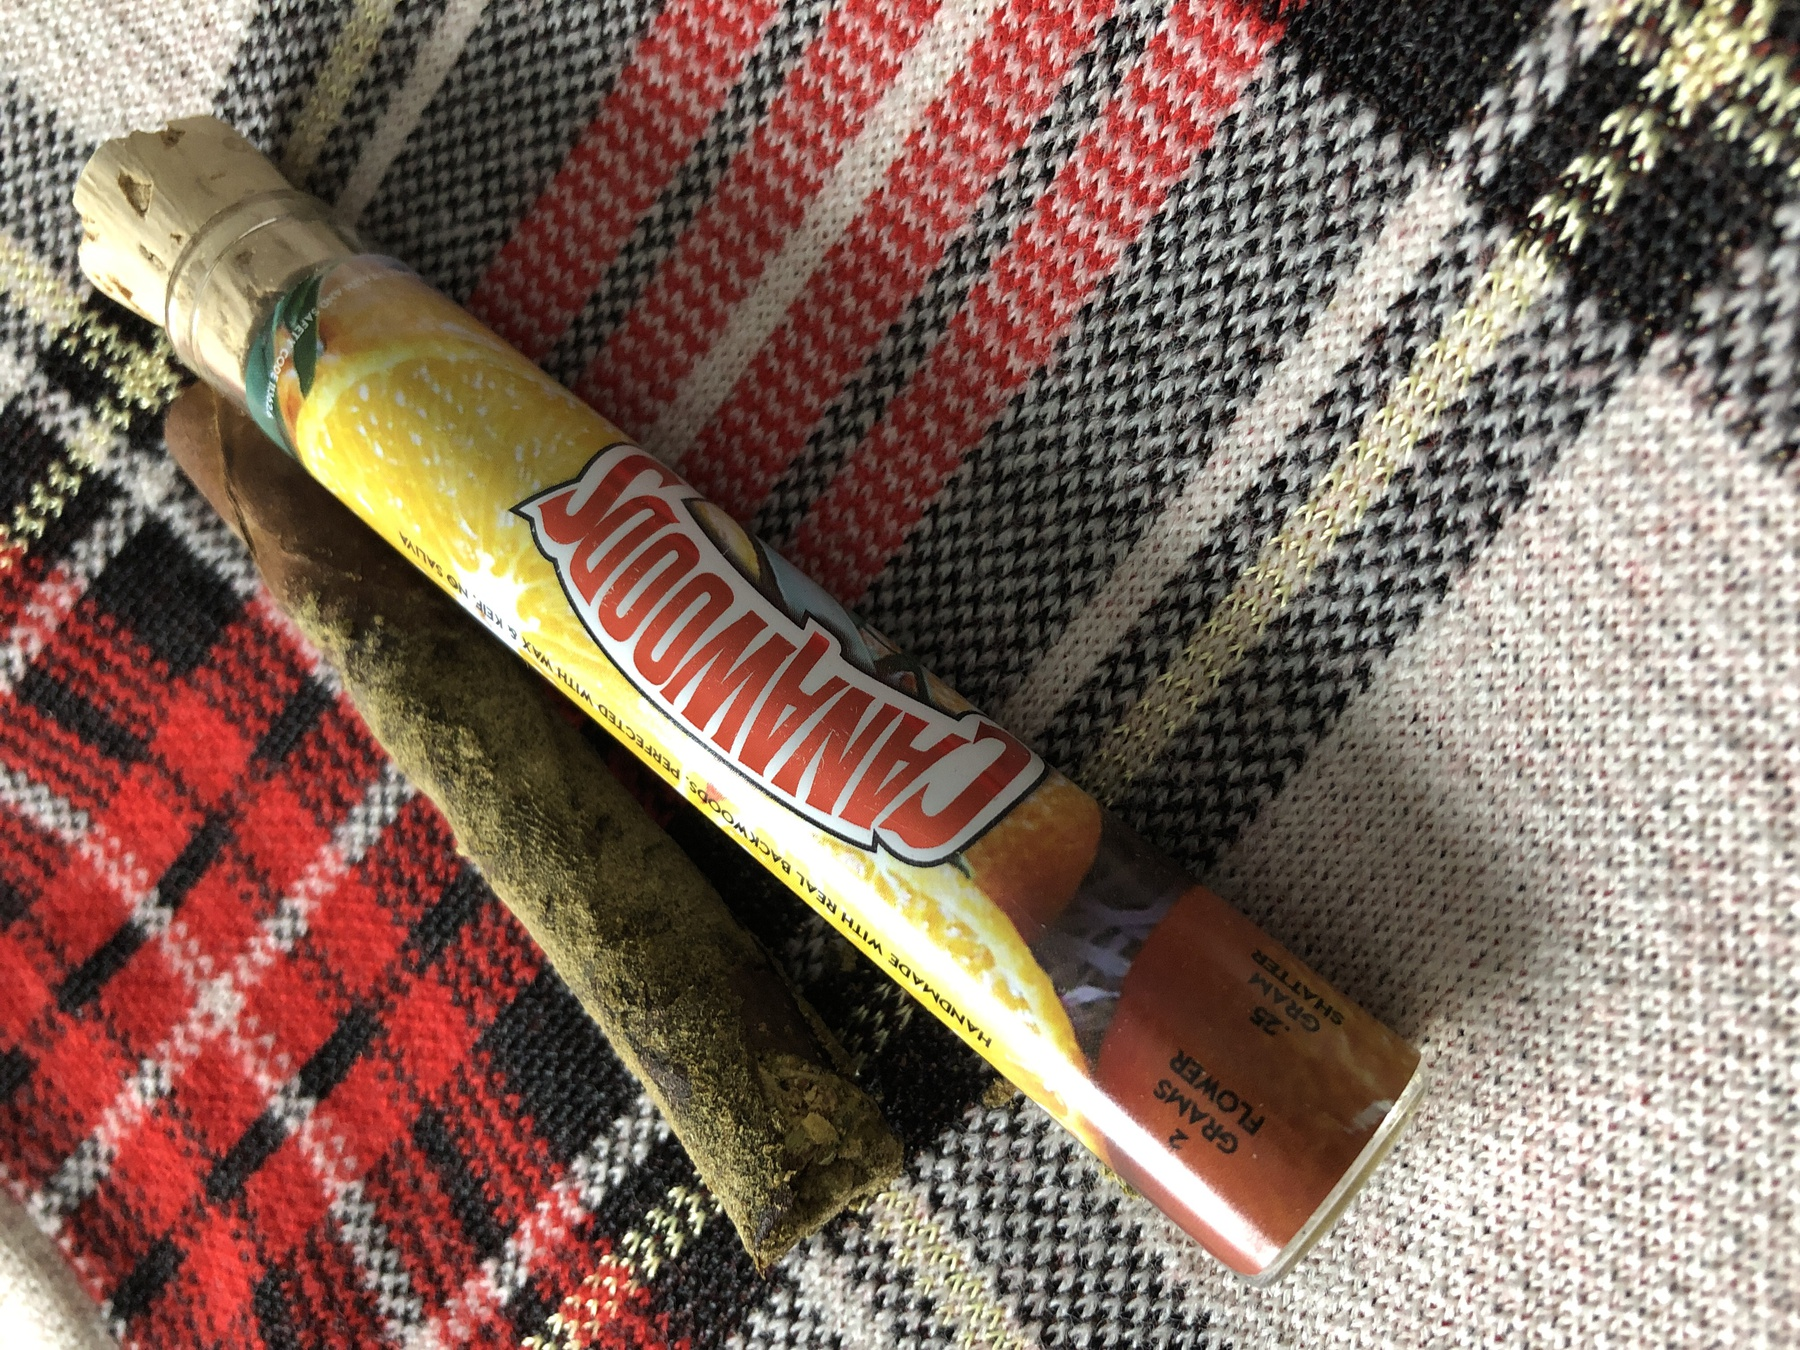 Cannawoods Novelty Blunt (Many Strains Available) 2 g Flower - 0.25 g Shatter - 0.25 Kief Blunt Product image